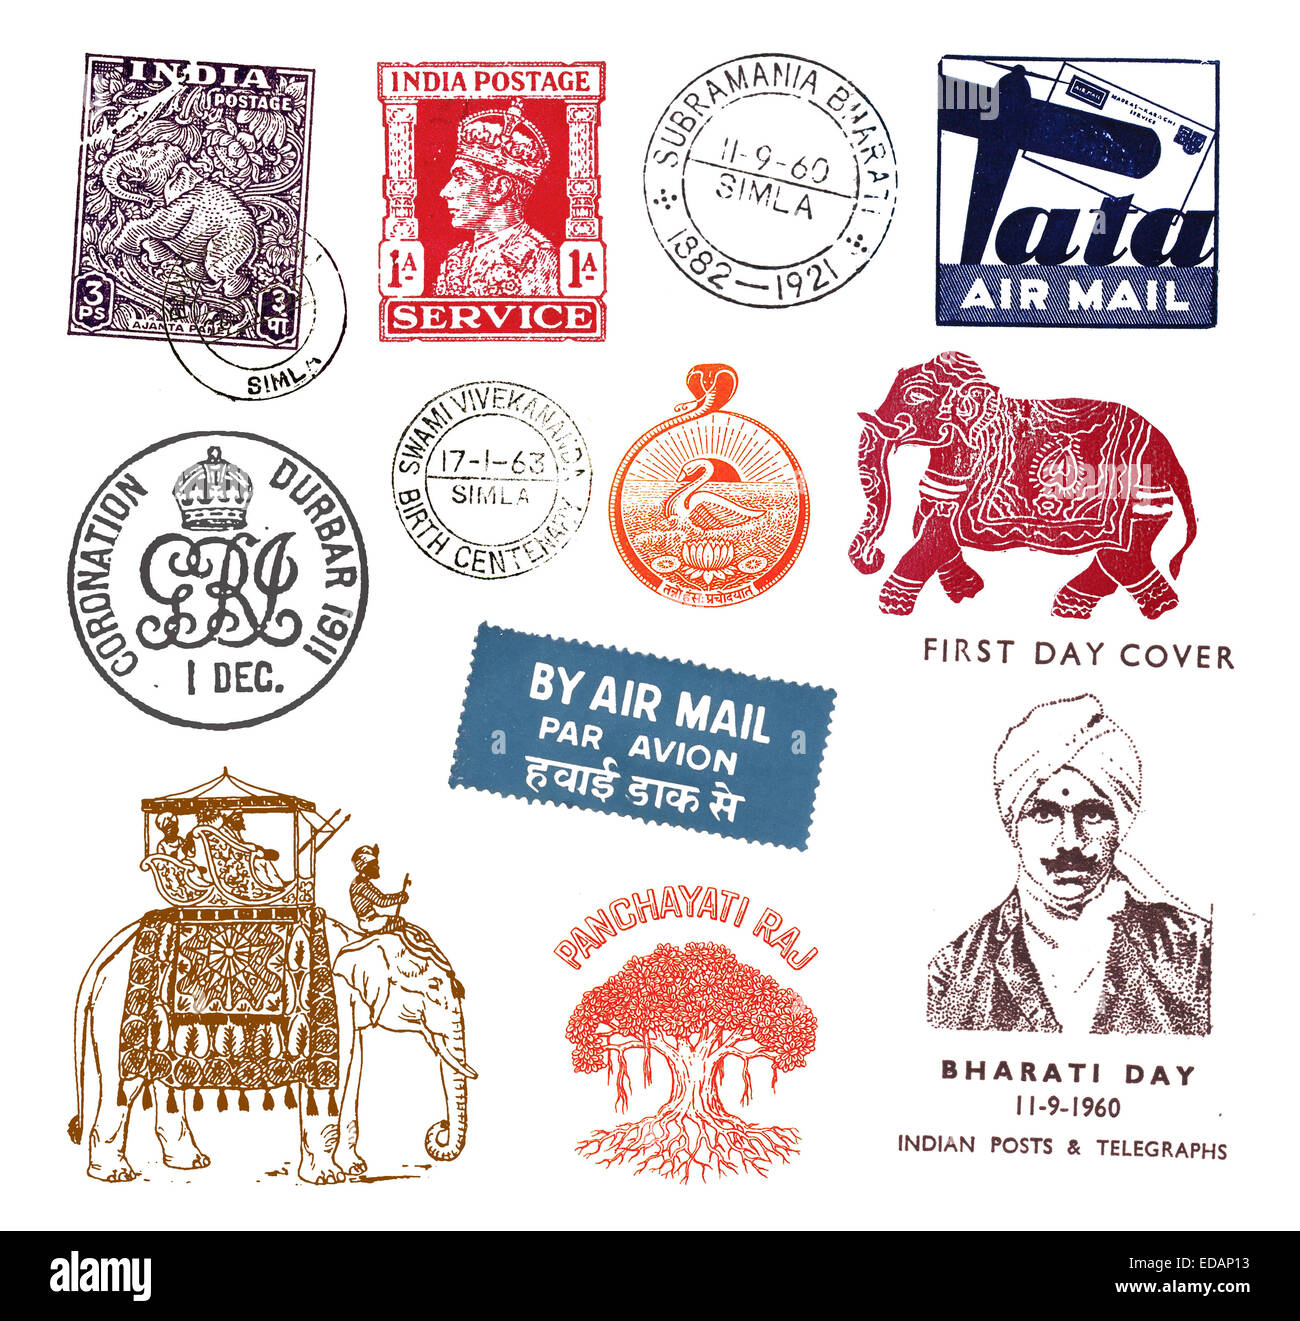 Postage stamps and labels from India, mostly vintage - Stock Image